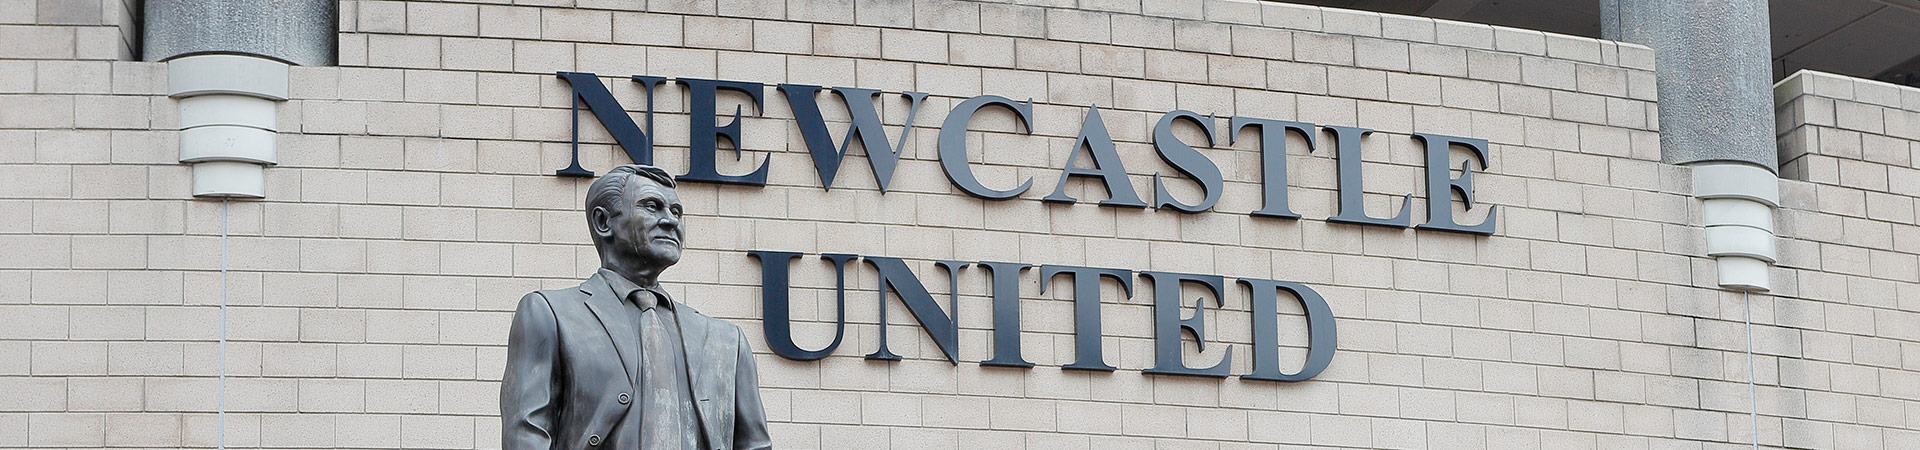 Newcastle United FC, St James